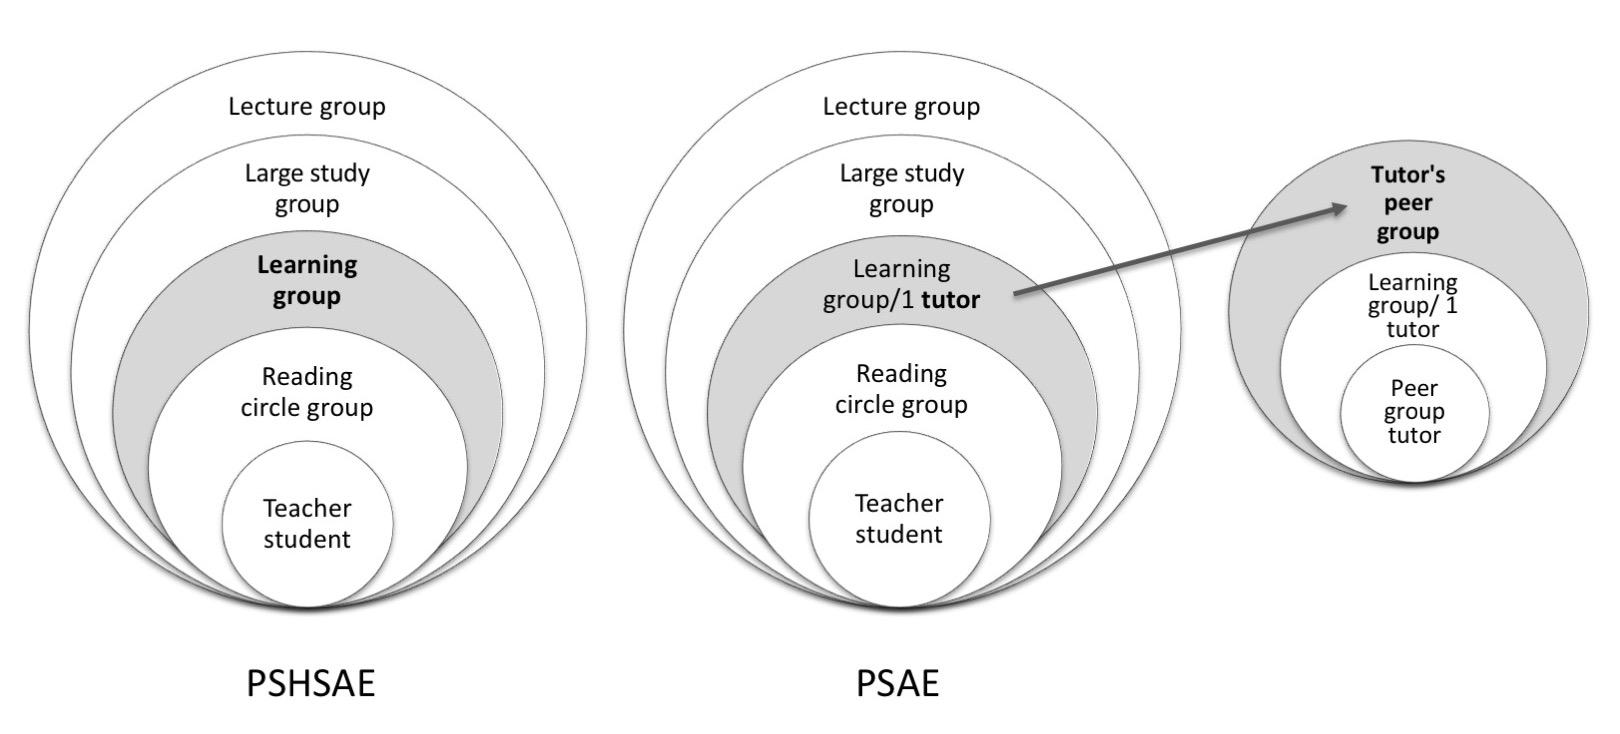 The roles of students' and tutors' self-positions within the two peer group contexts in higher education